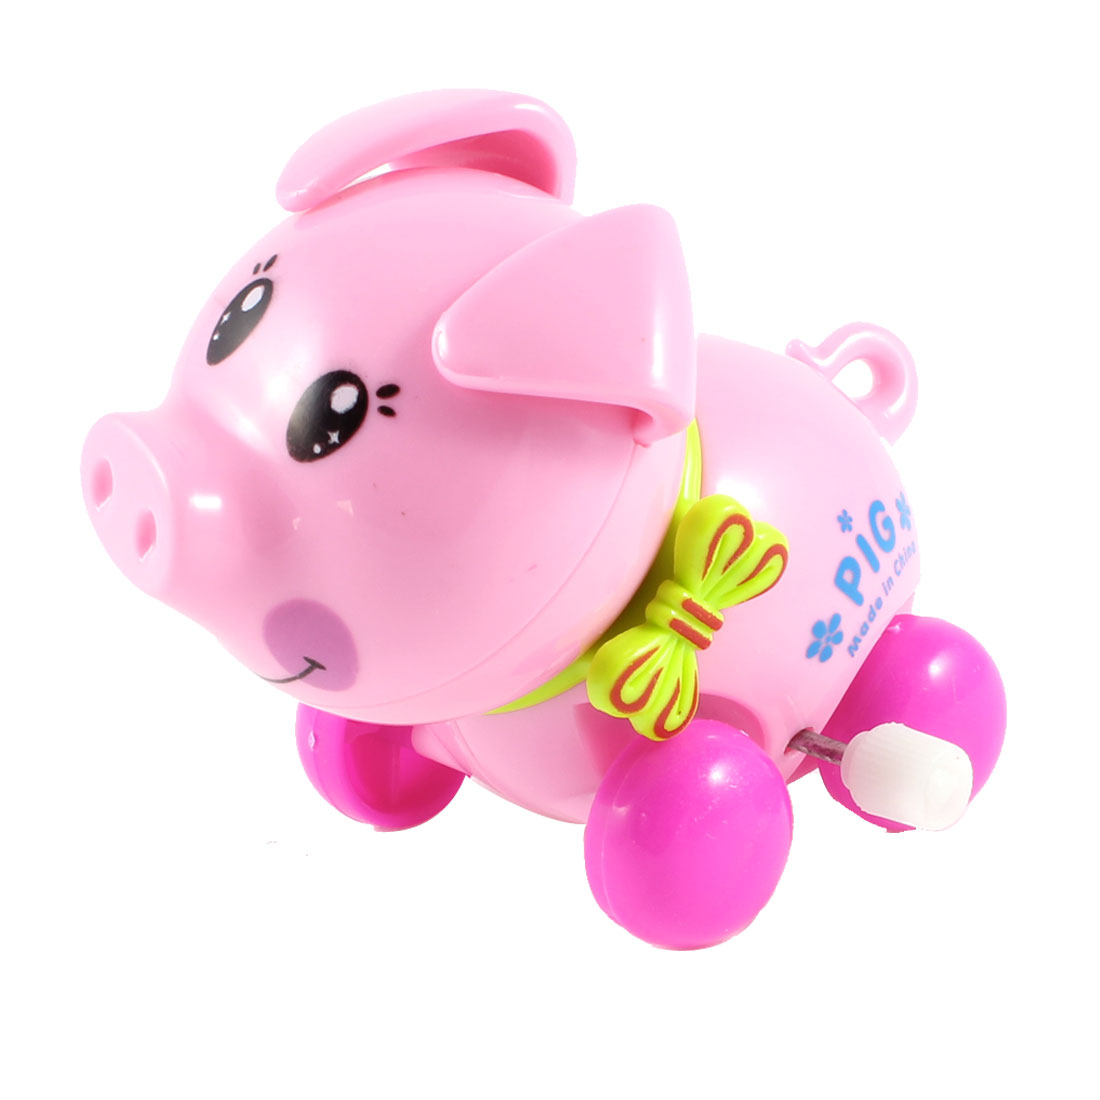 Children Clockwork Wind Up Folwer Print Cartoon Pig Toy Pink Fuchsia Green